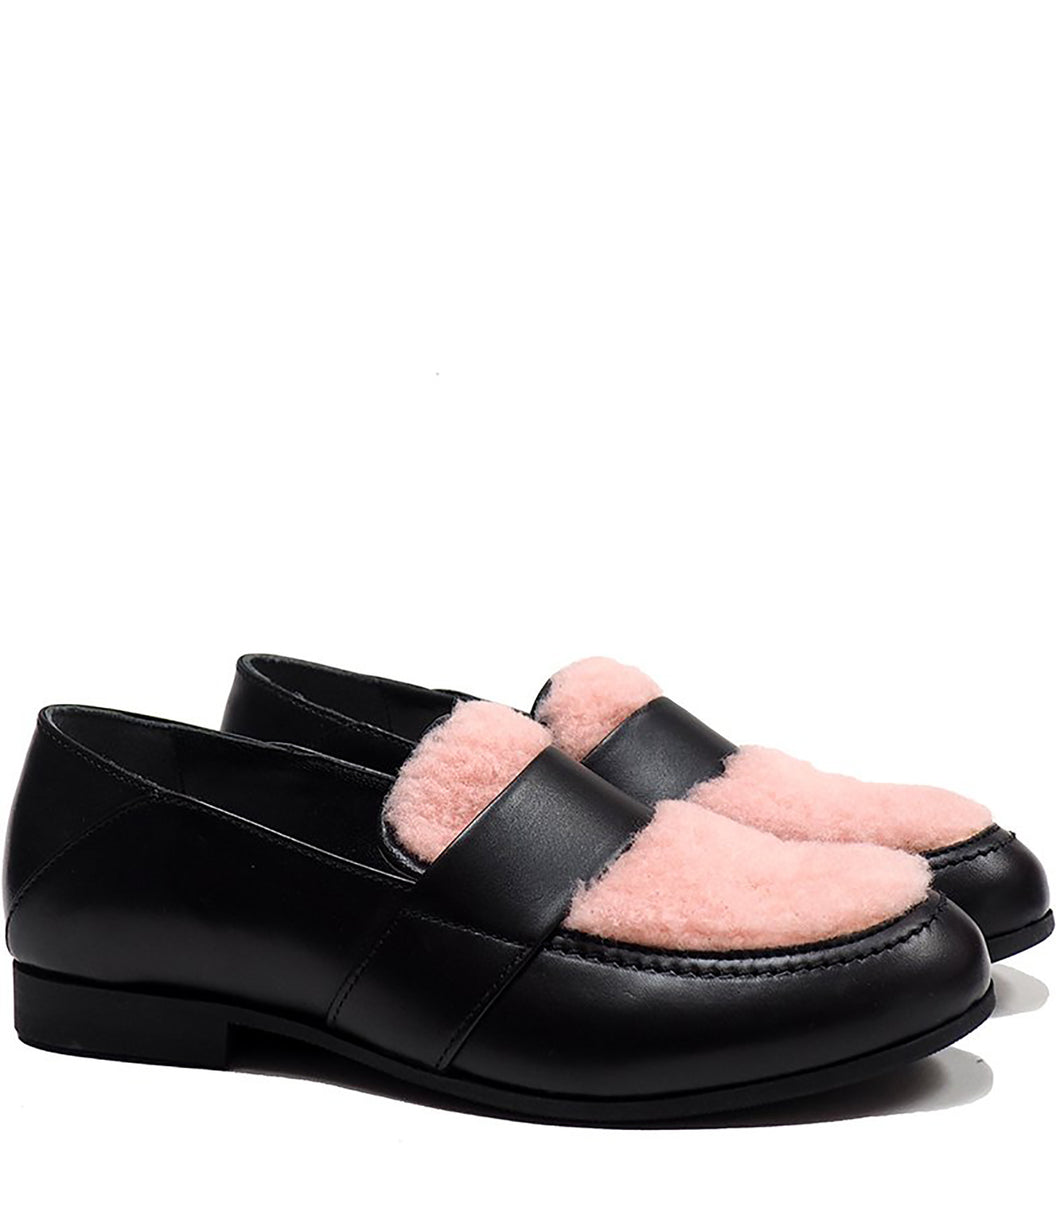 Penny loafer with pink fluffy details and black calf leather